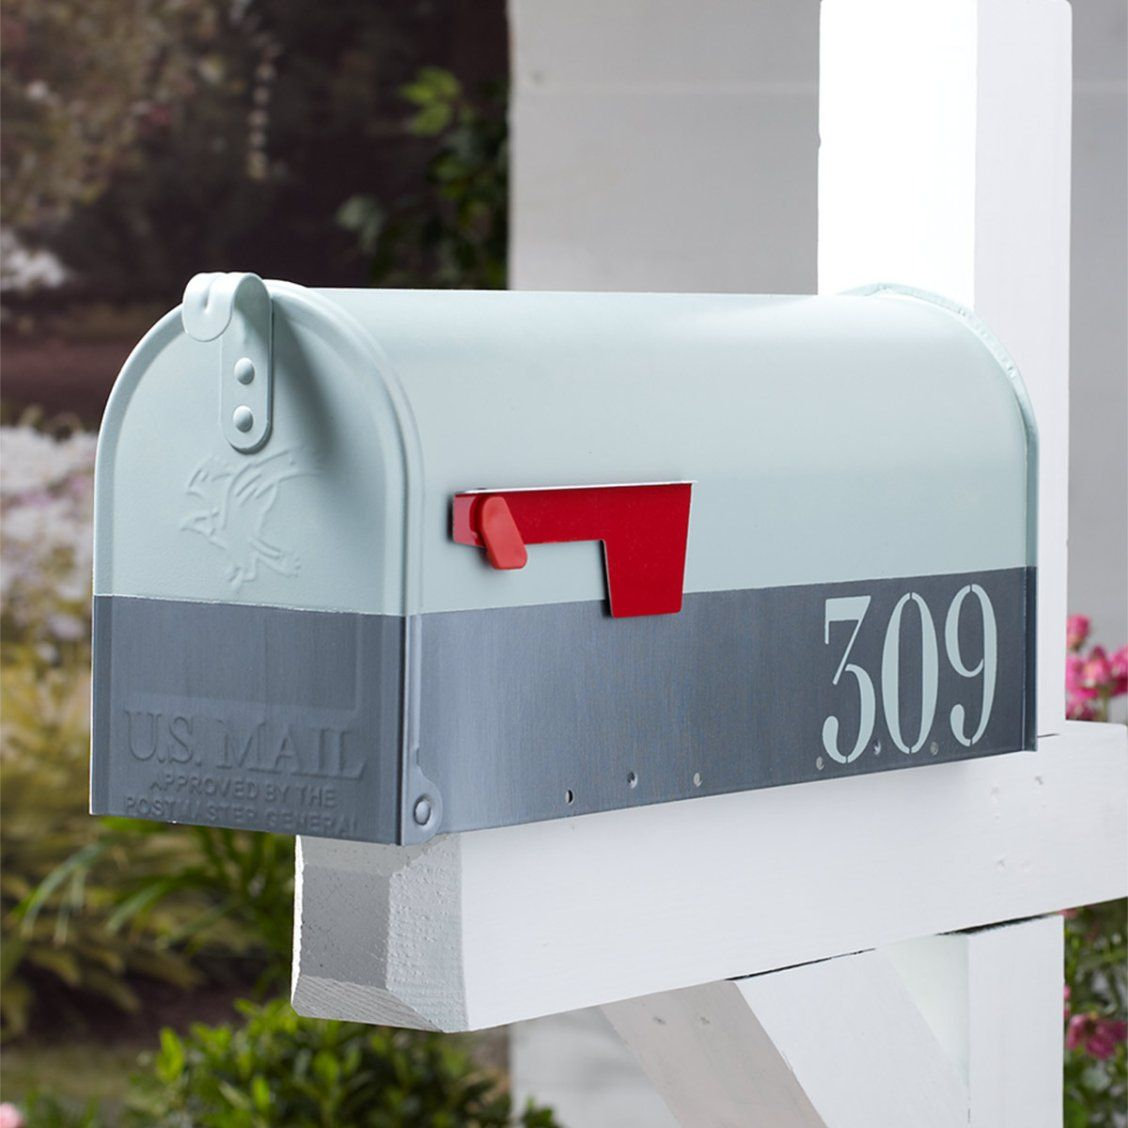 Lovely Makeover Your Mailbox With This Martha Stewart Painted Mailbox Project.  Made With Martha Stewart Home